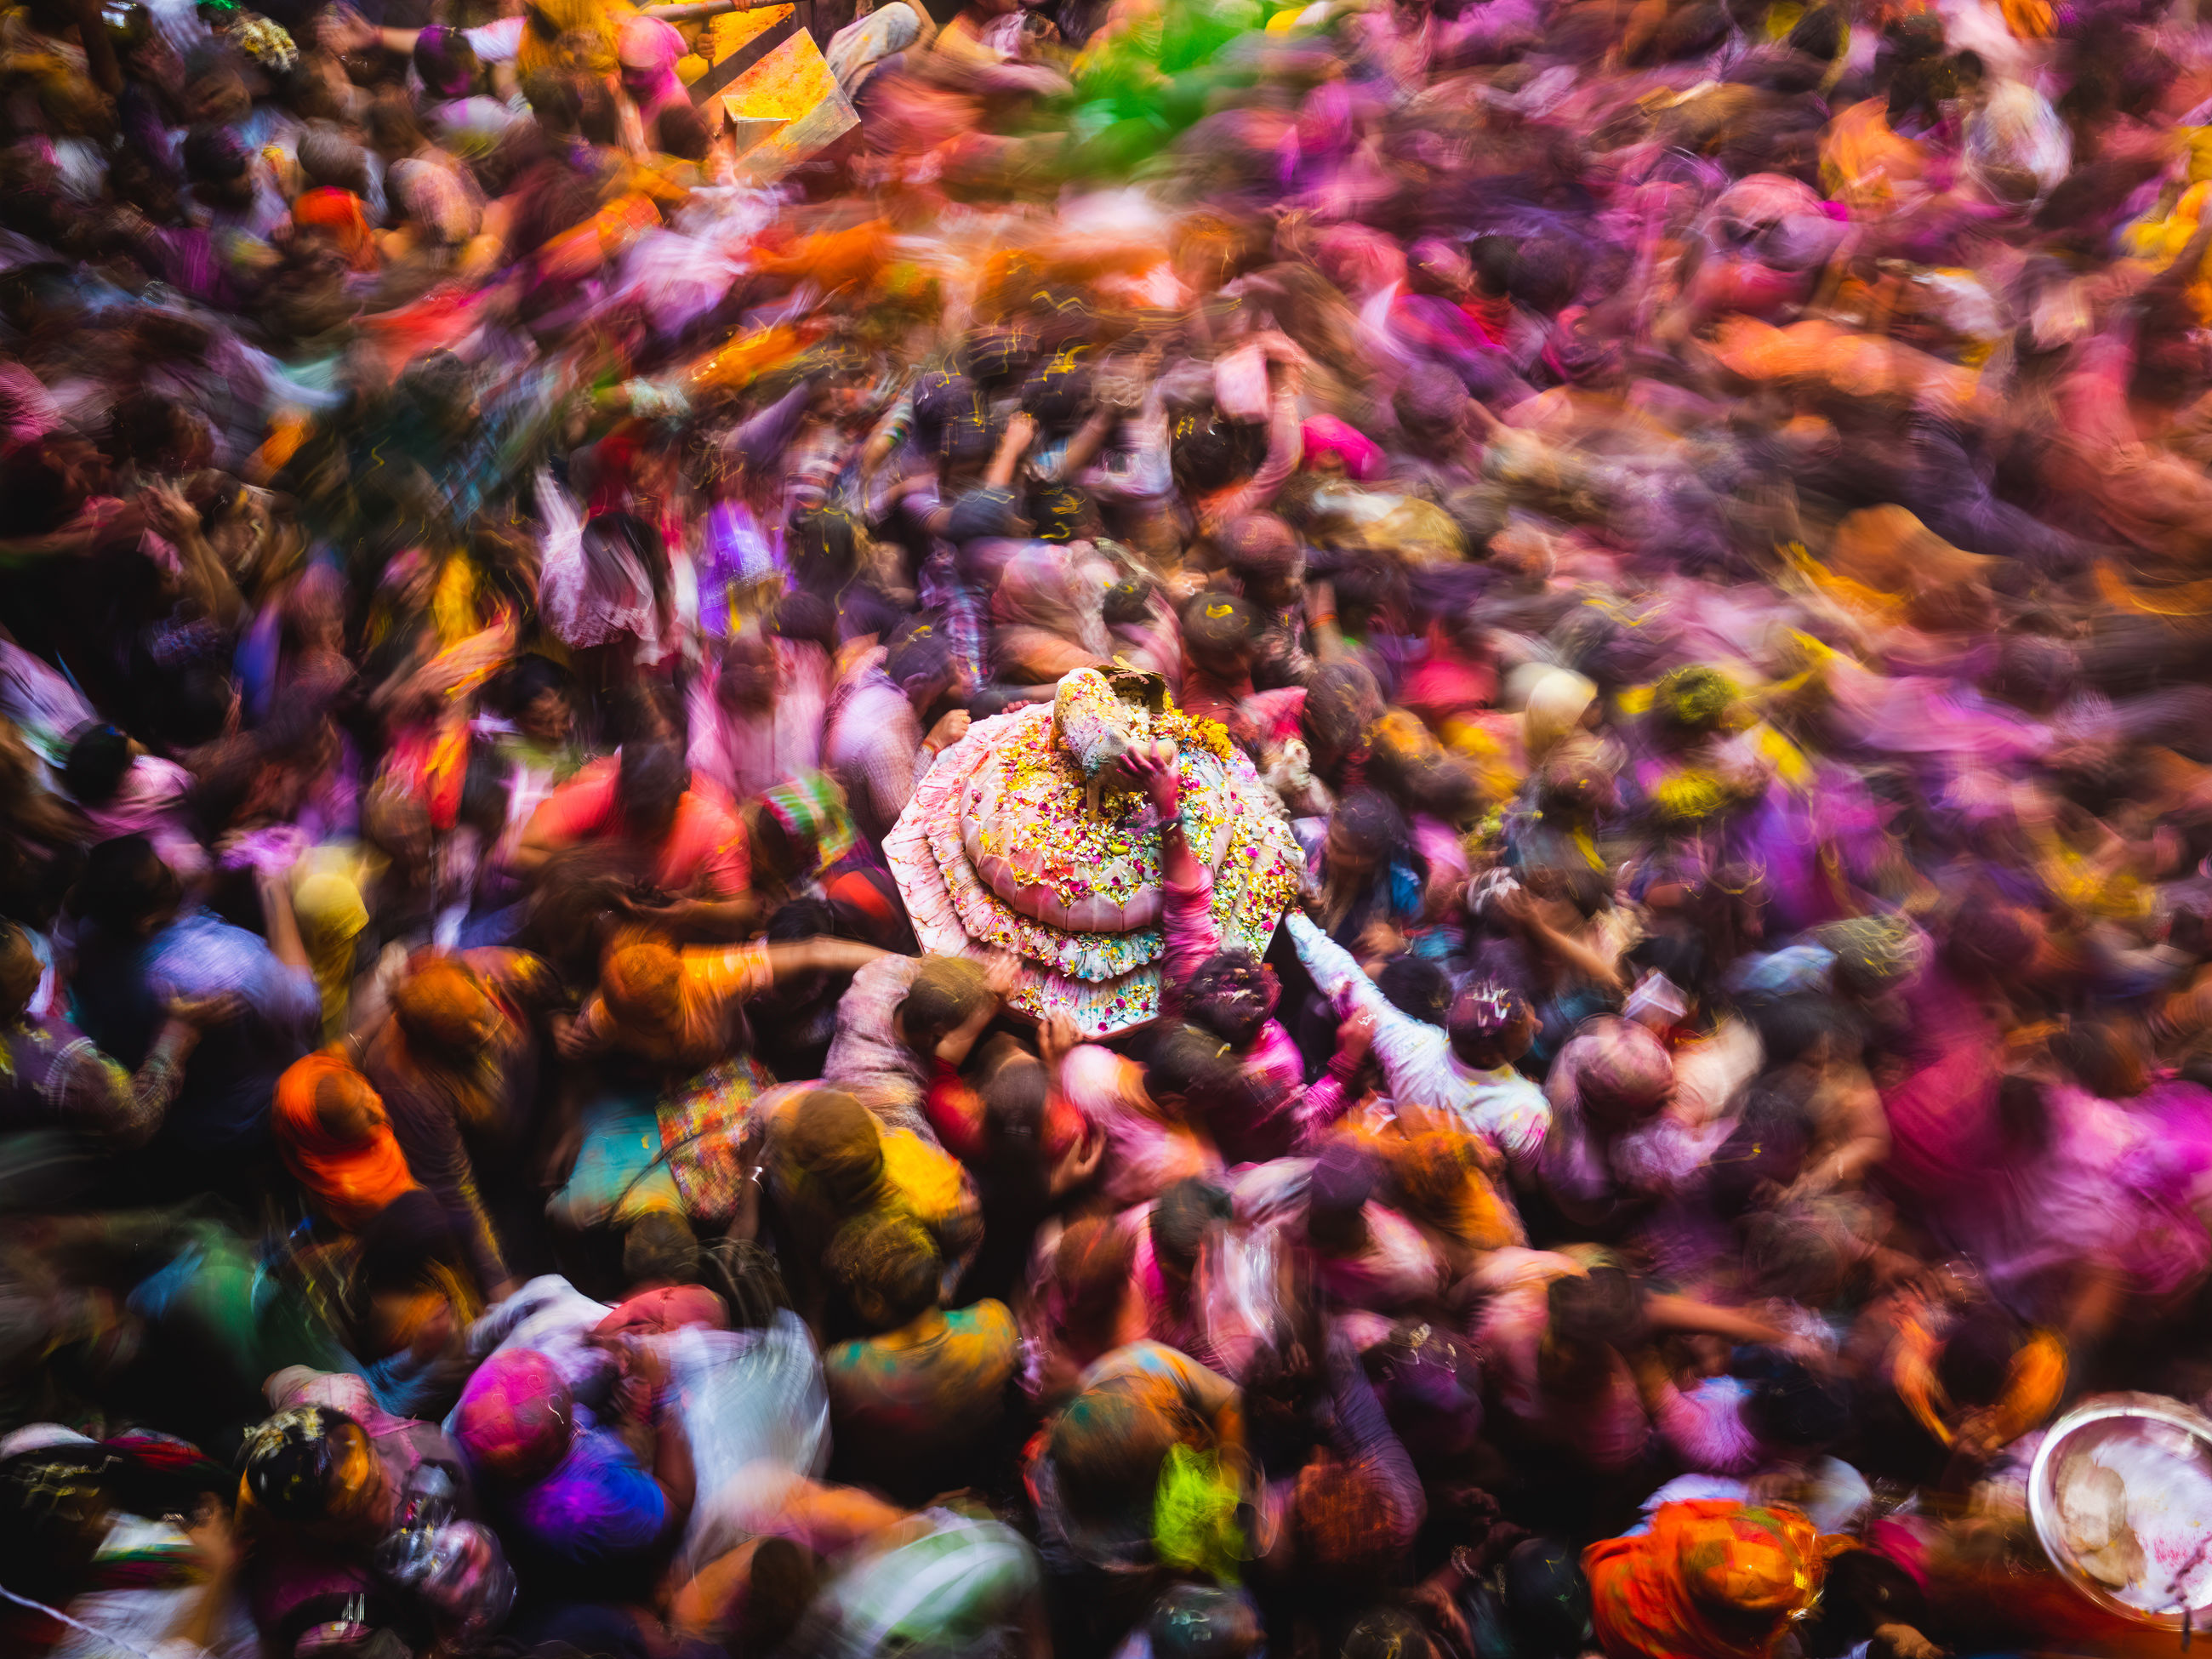 multi colored, group of people, crowd, blurred motion, motion, day, real people, large group of people, outdoors, high angle view, close-up, celebration, beauty in nature, full frame, nature, fragility, festival